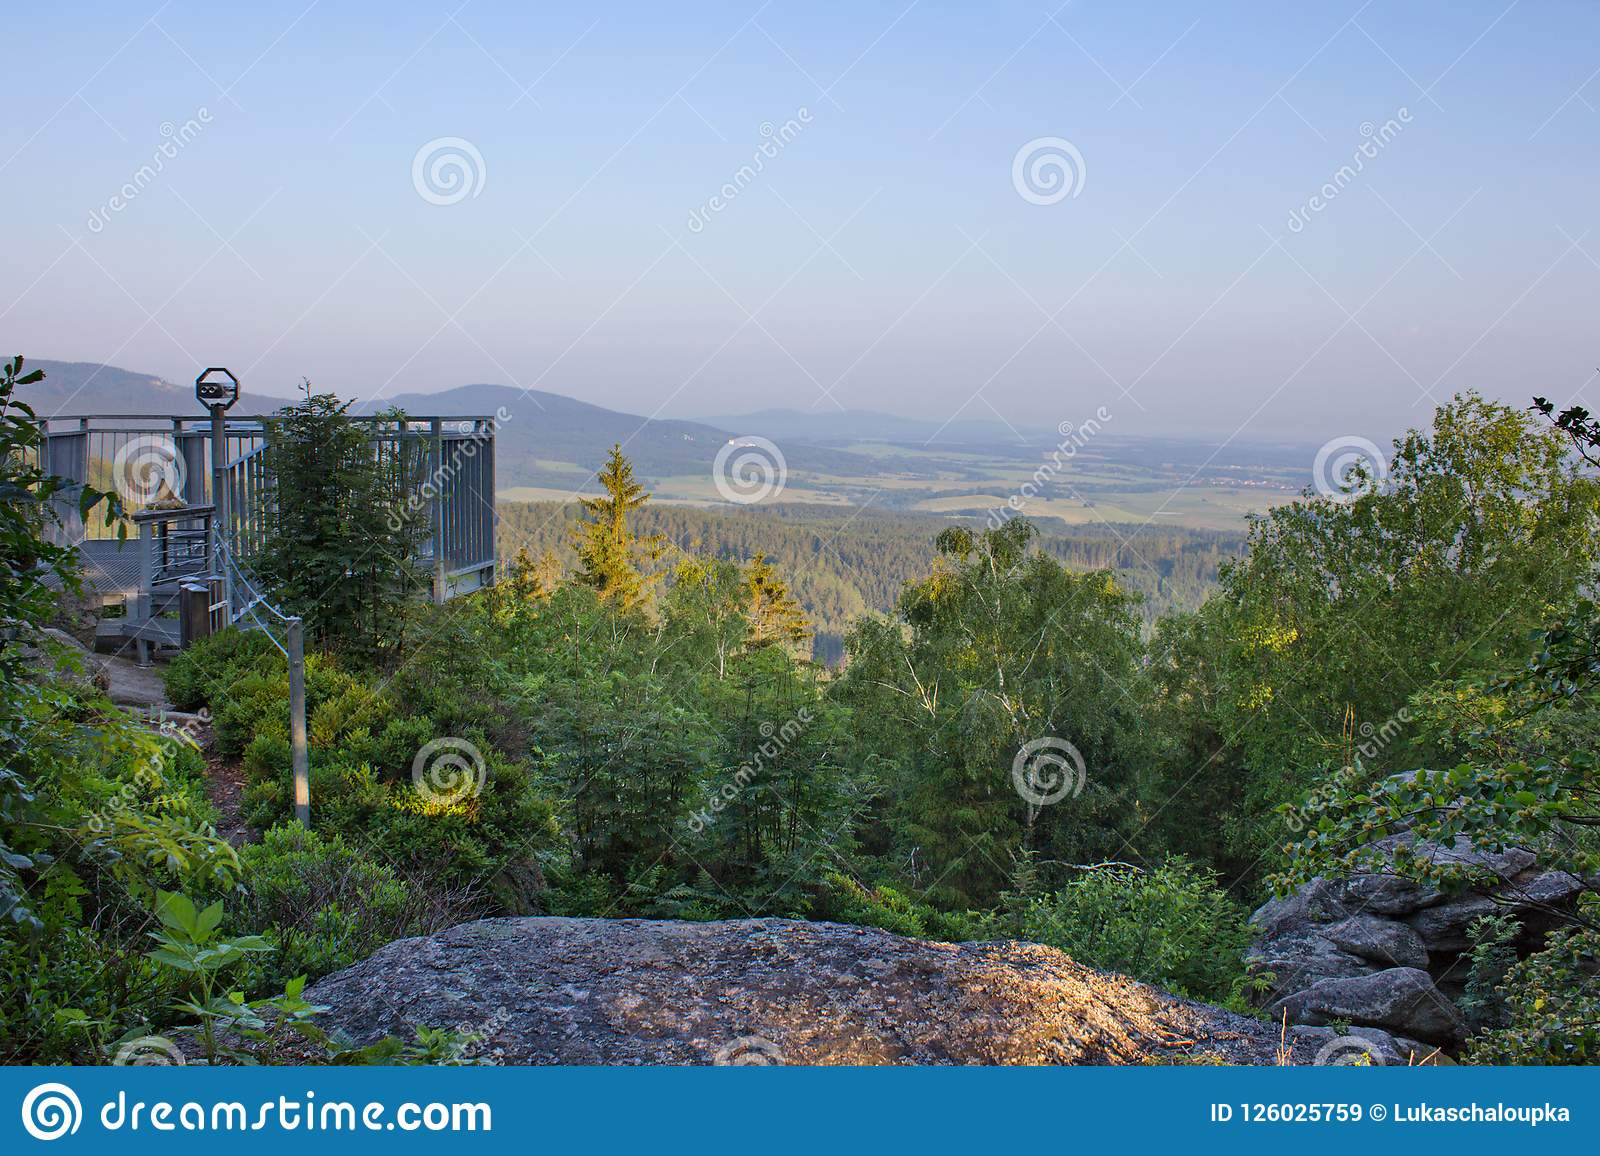 Vantage Point Mandelstein With Trees And Blue Sky Austria Stock